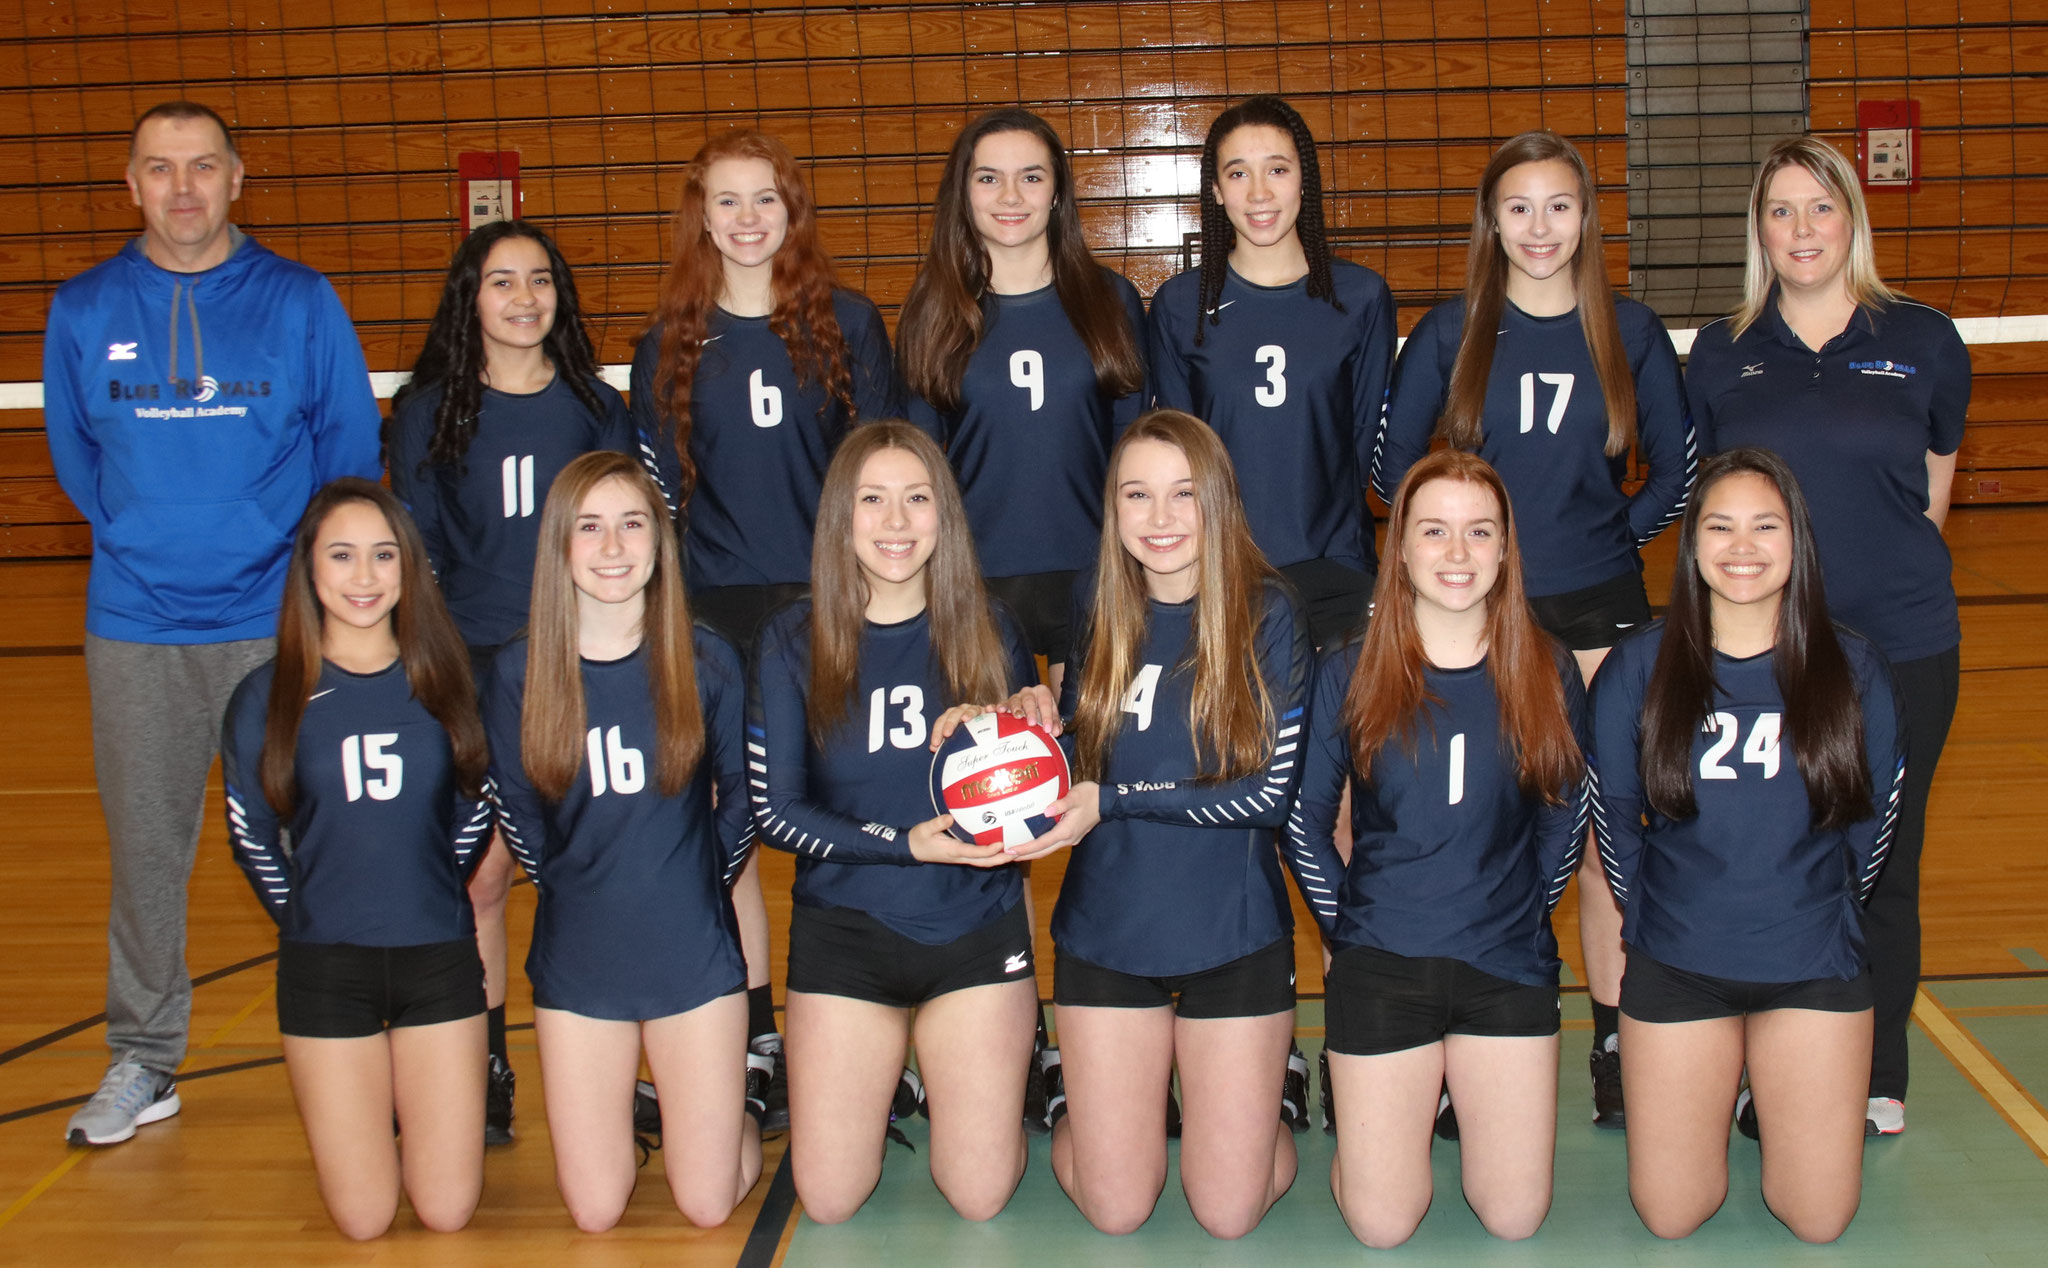 U16 National Team - See Team Page for Individual Photos